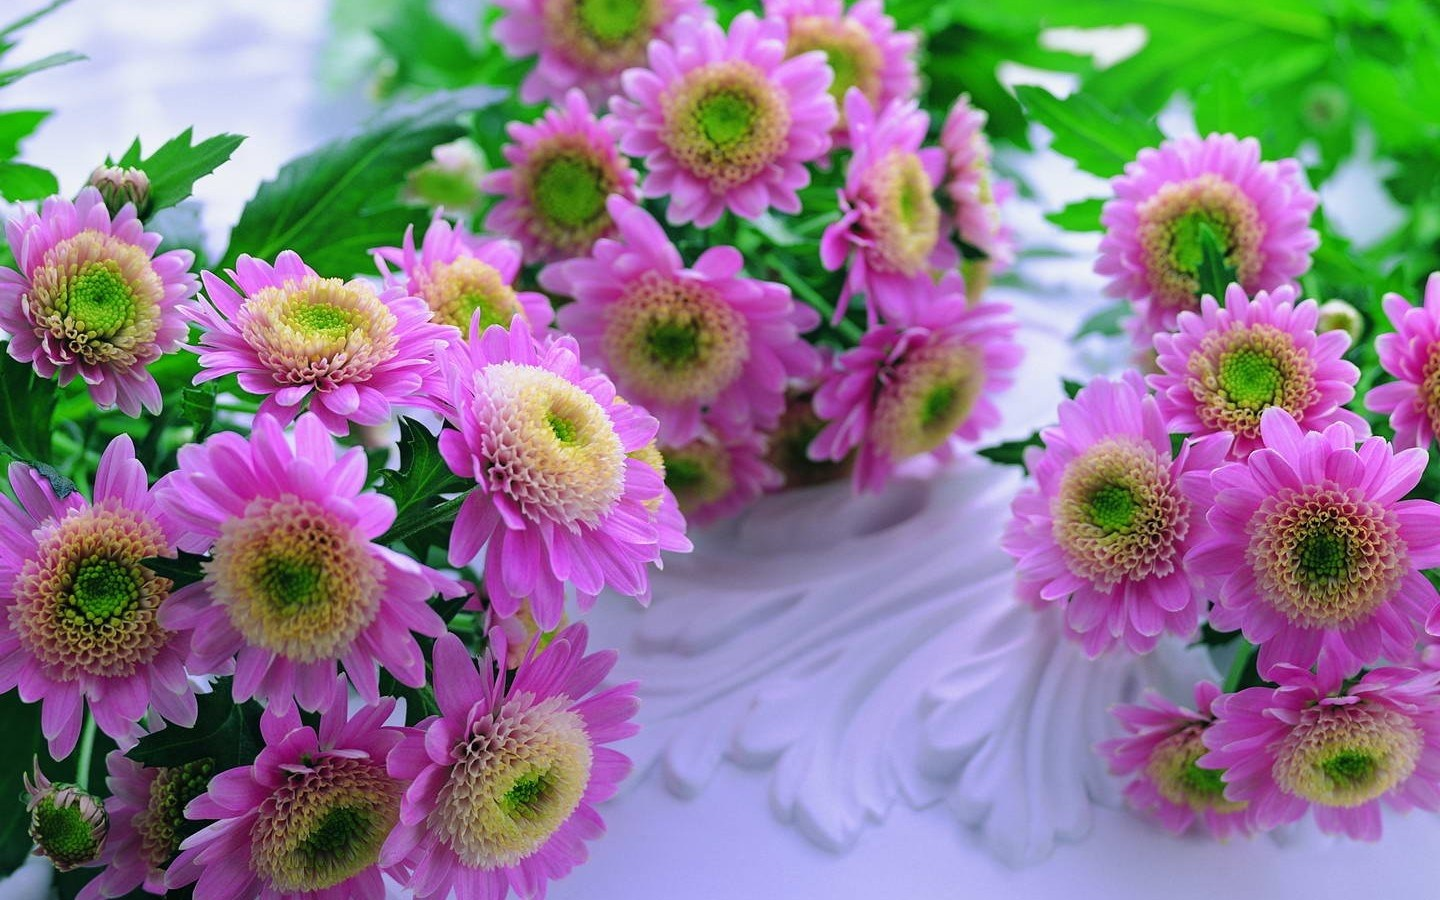 Amazing Flowers Wallpapers Free Download